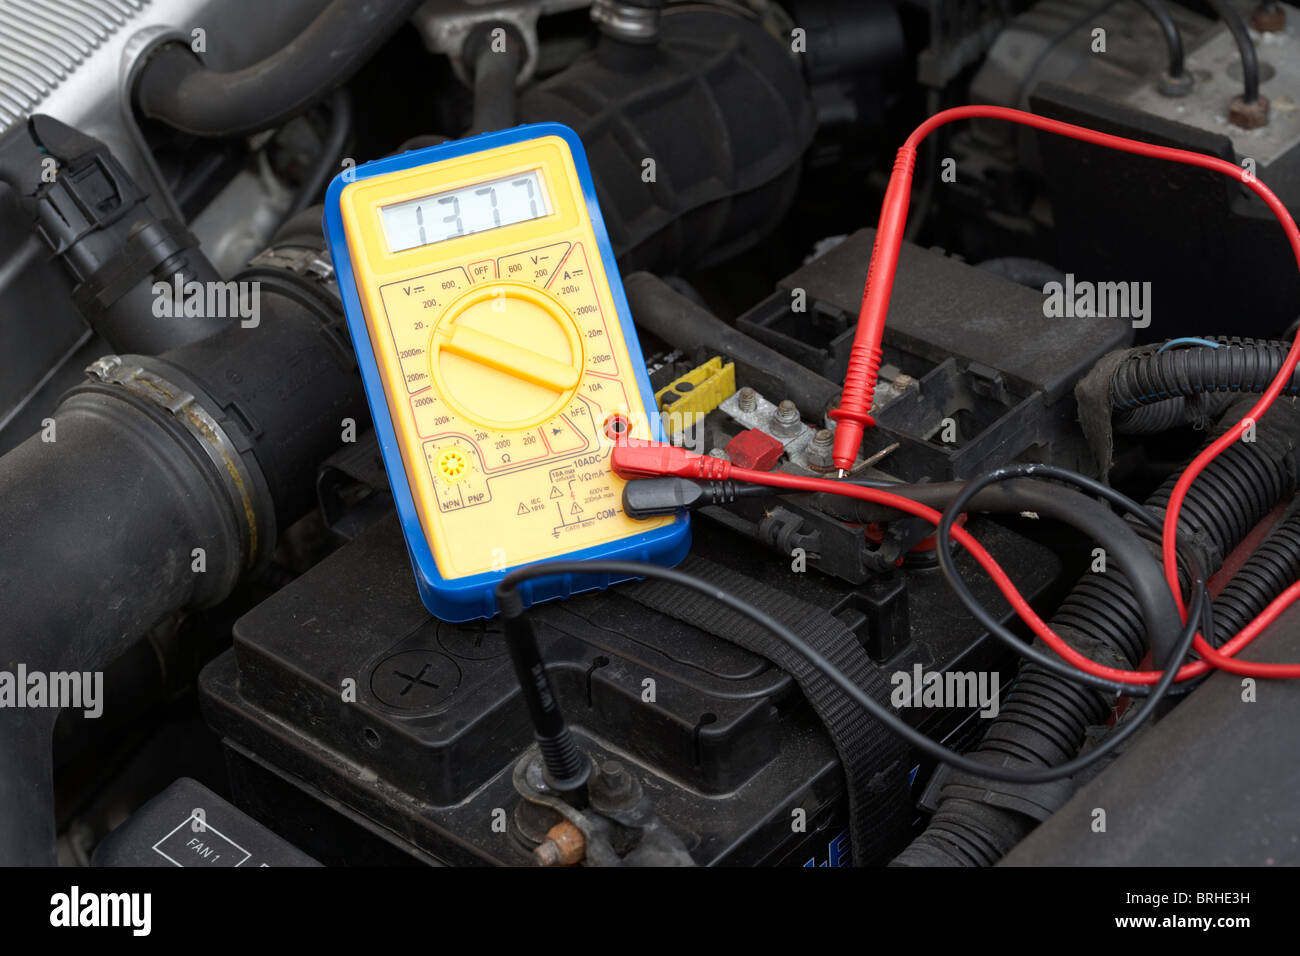 measuring voltage of a car battery using a multimeter - Stock Image